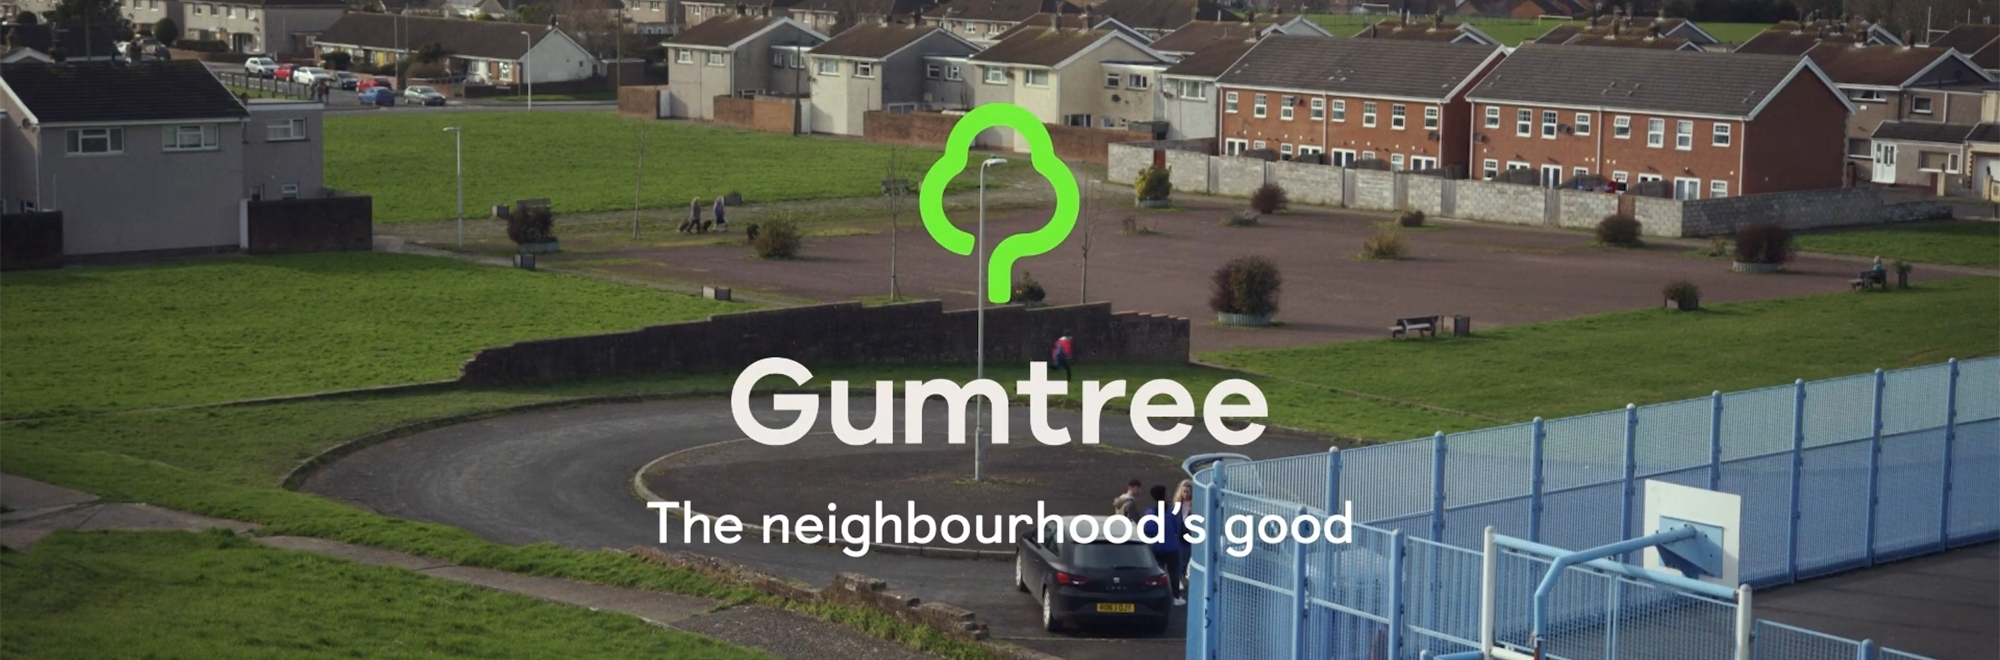 Gumtree and Fold7 go back into the community to highlight the simplicity of finding 'A car right up your street'